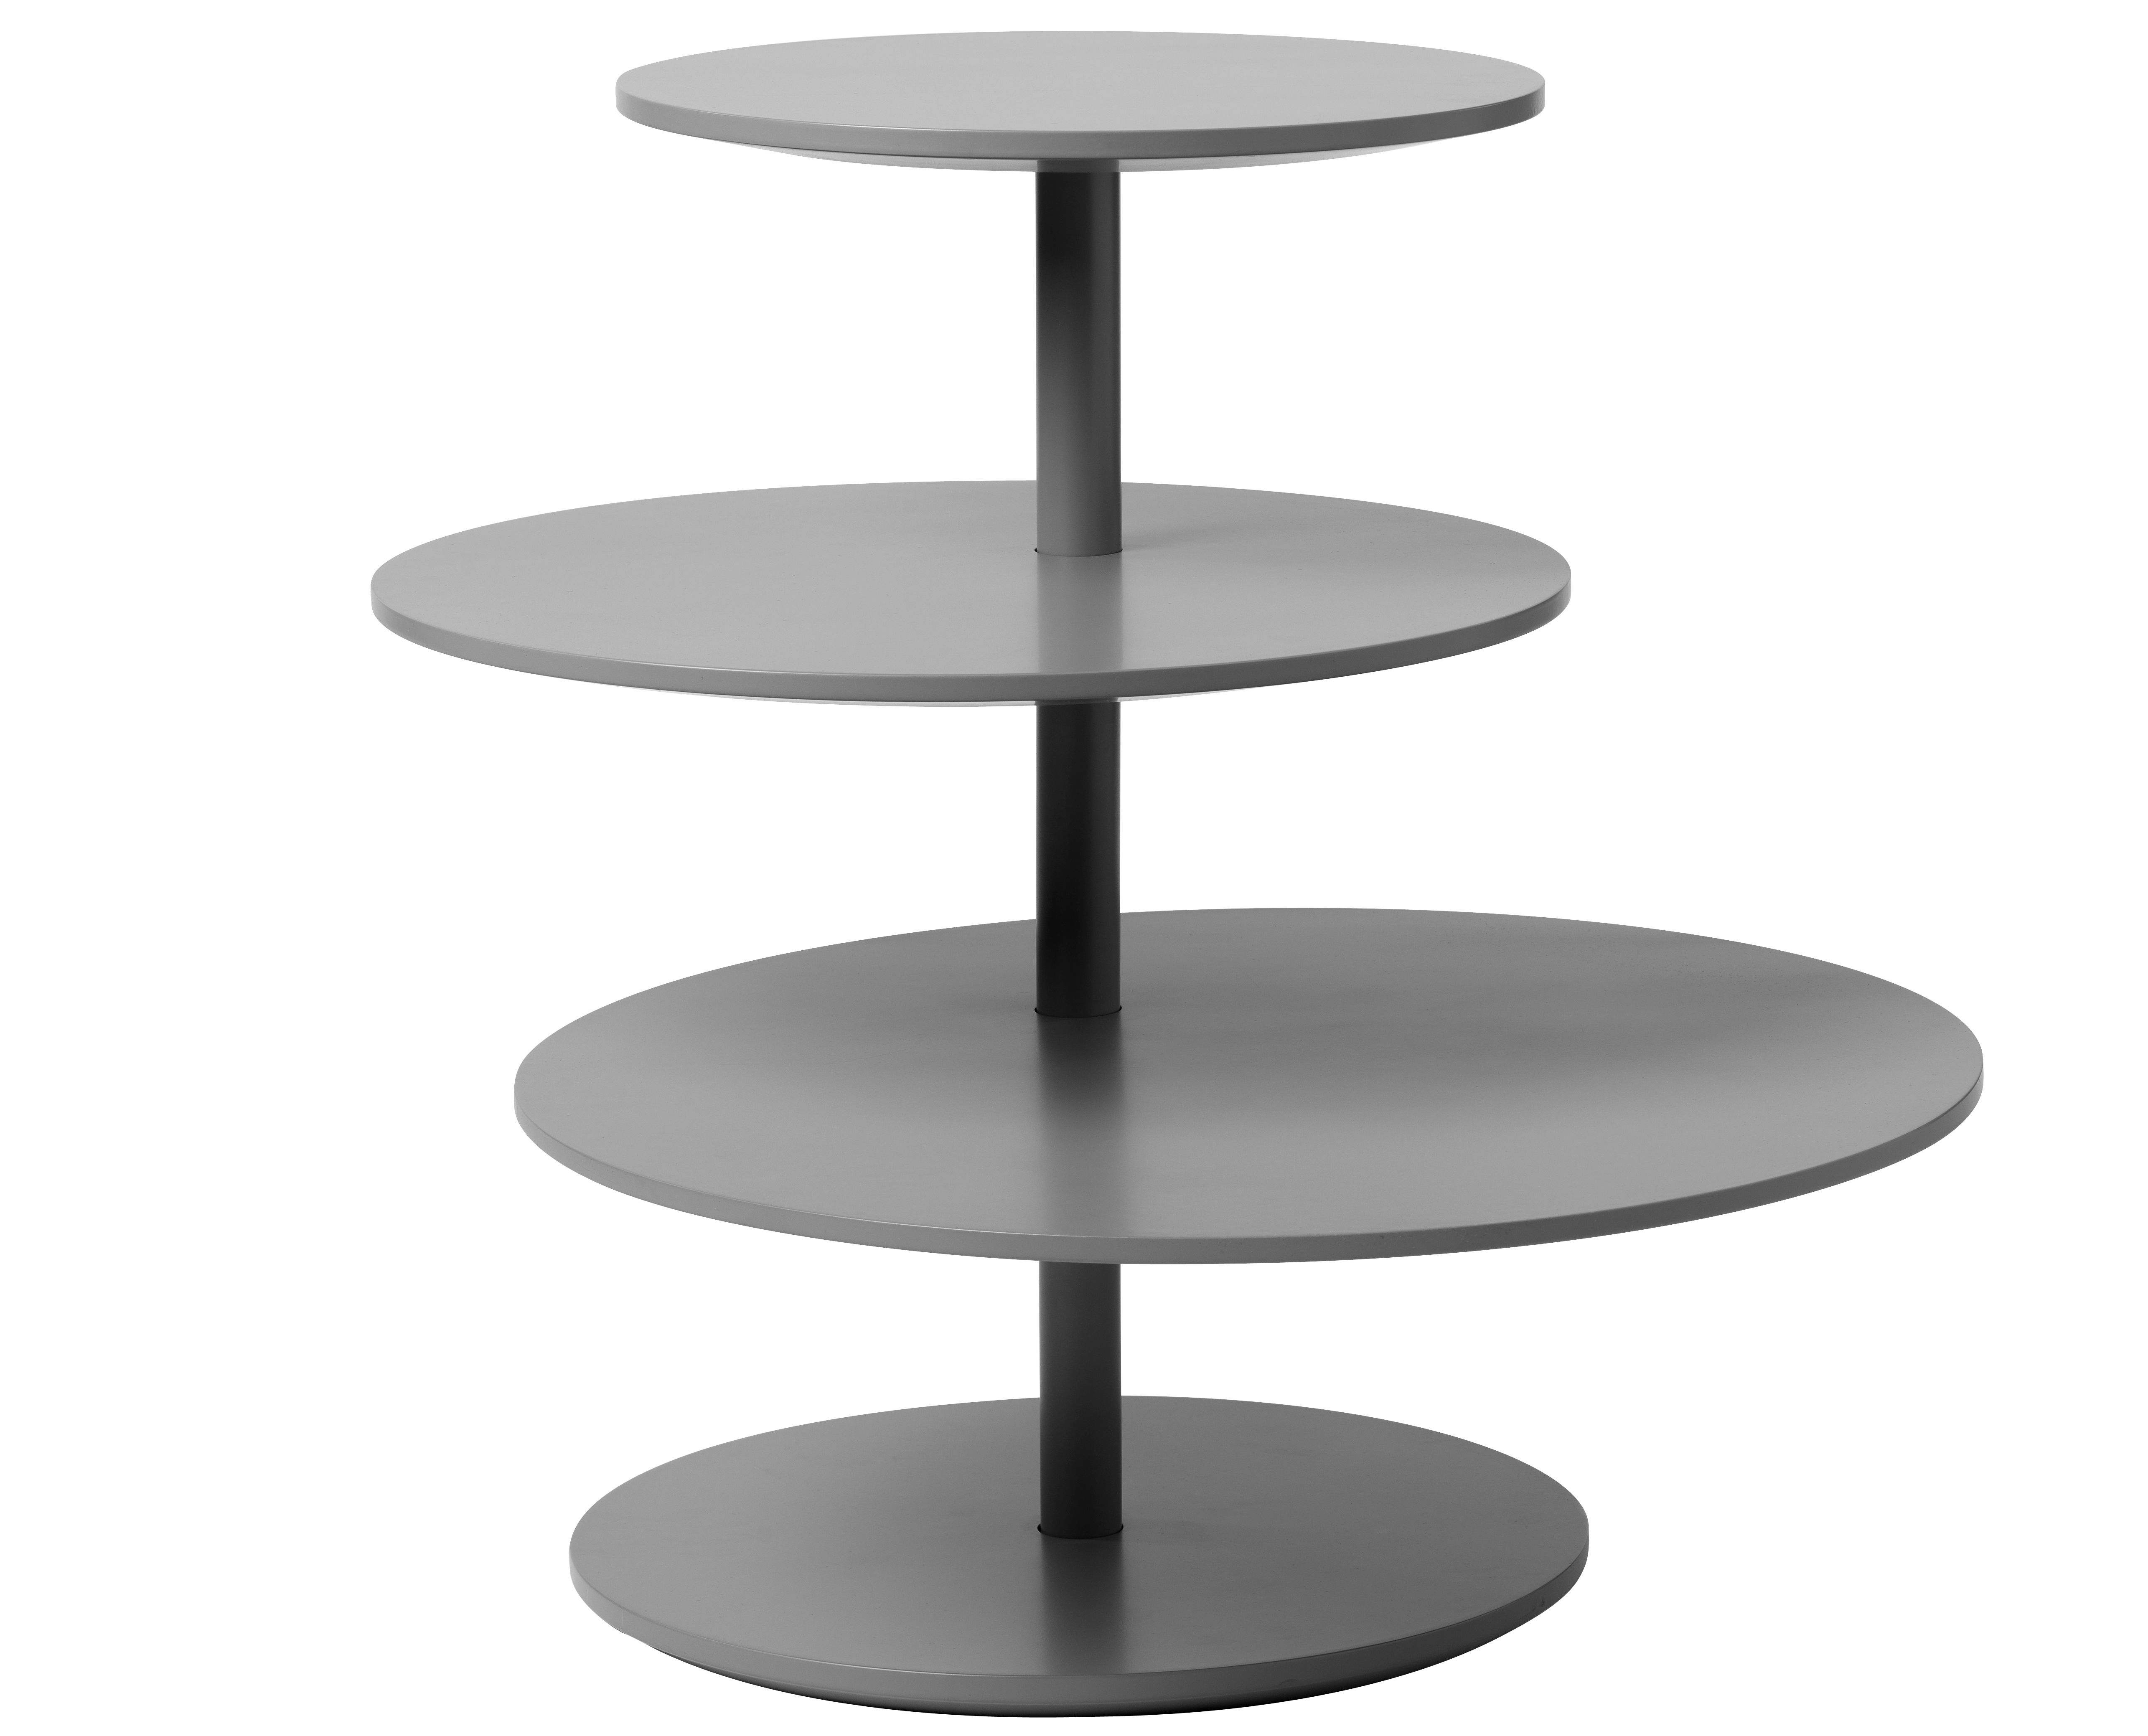 table basse twist tag re h 59 cm graphite design house stockholm made in design. Black Bedroom Furniture Sets. Home Design Ideas